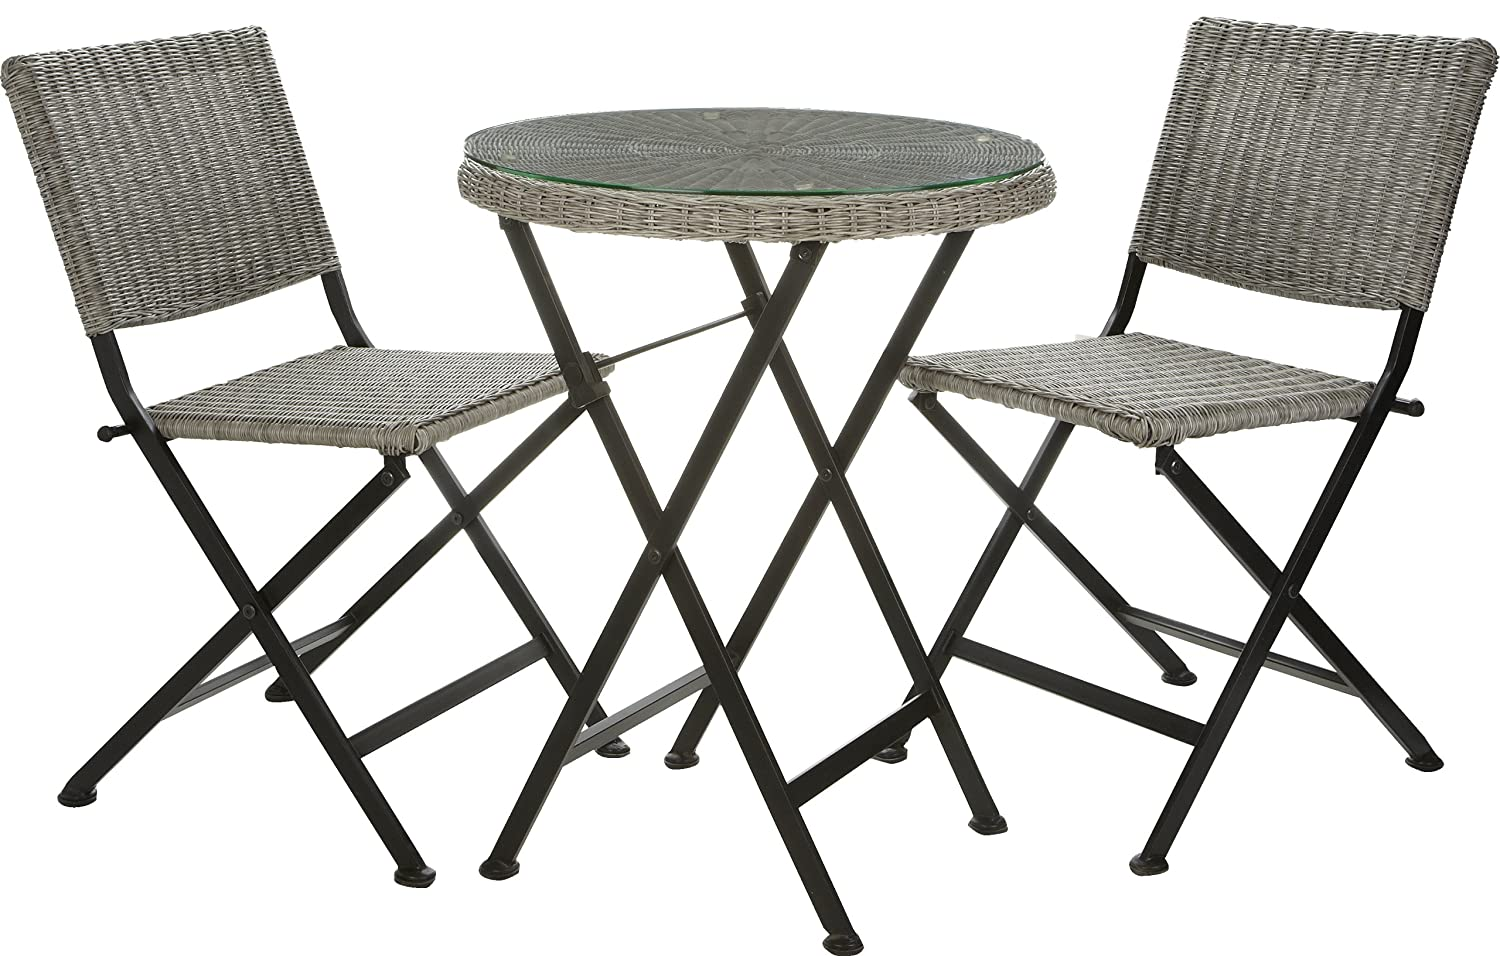 gartenfreude bistro set balkonm bel polyrattan grau mit glasplatte 60 cm g nstig online kaufen. Black Bedroom Furniture Sets. Home Design Ideas